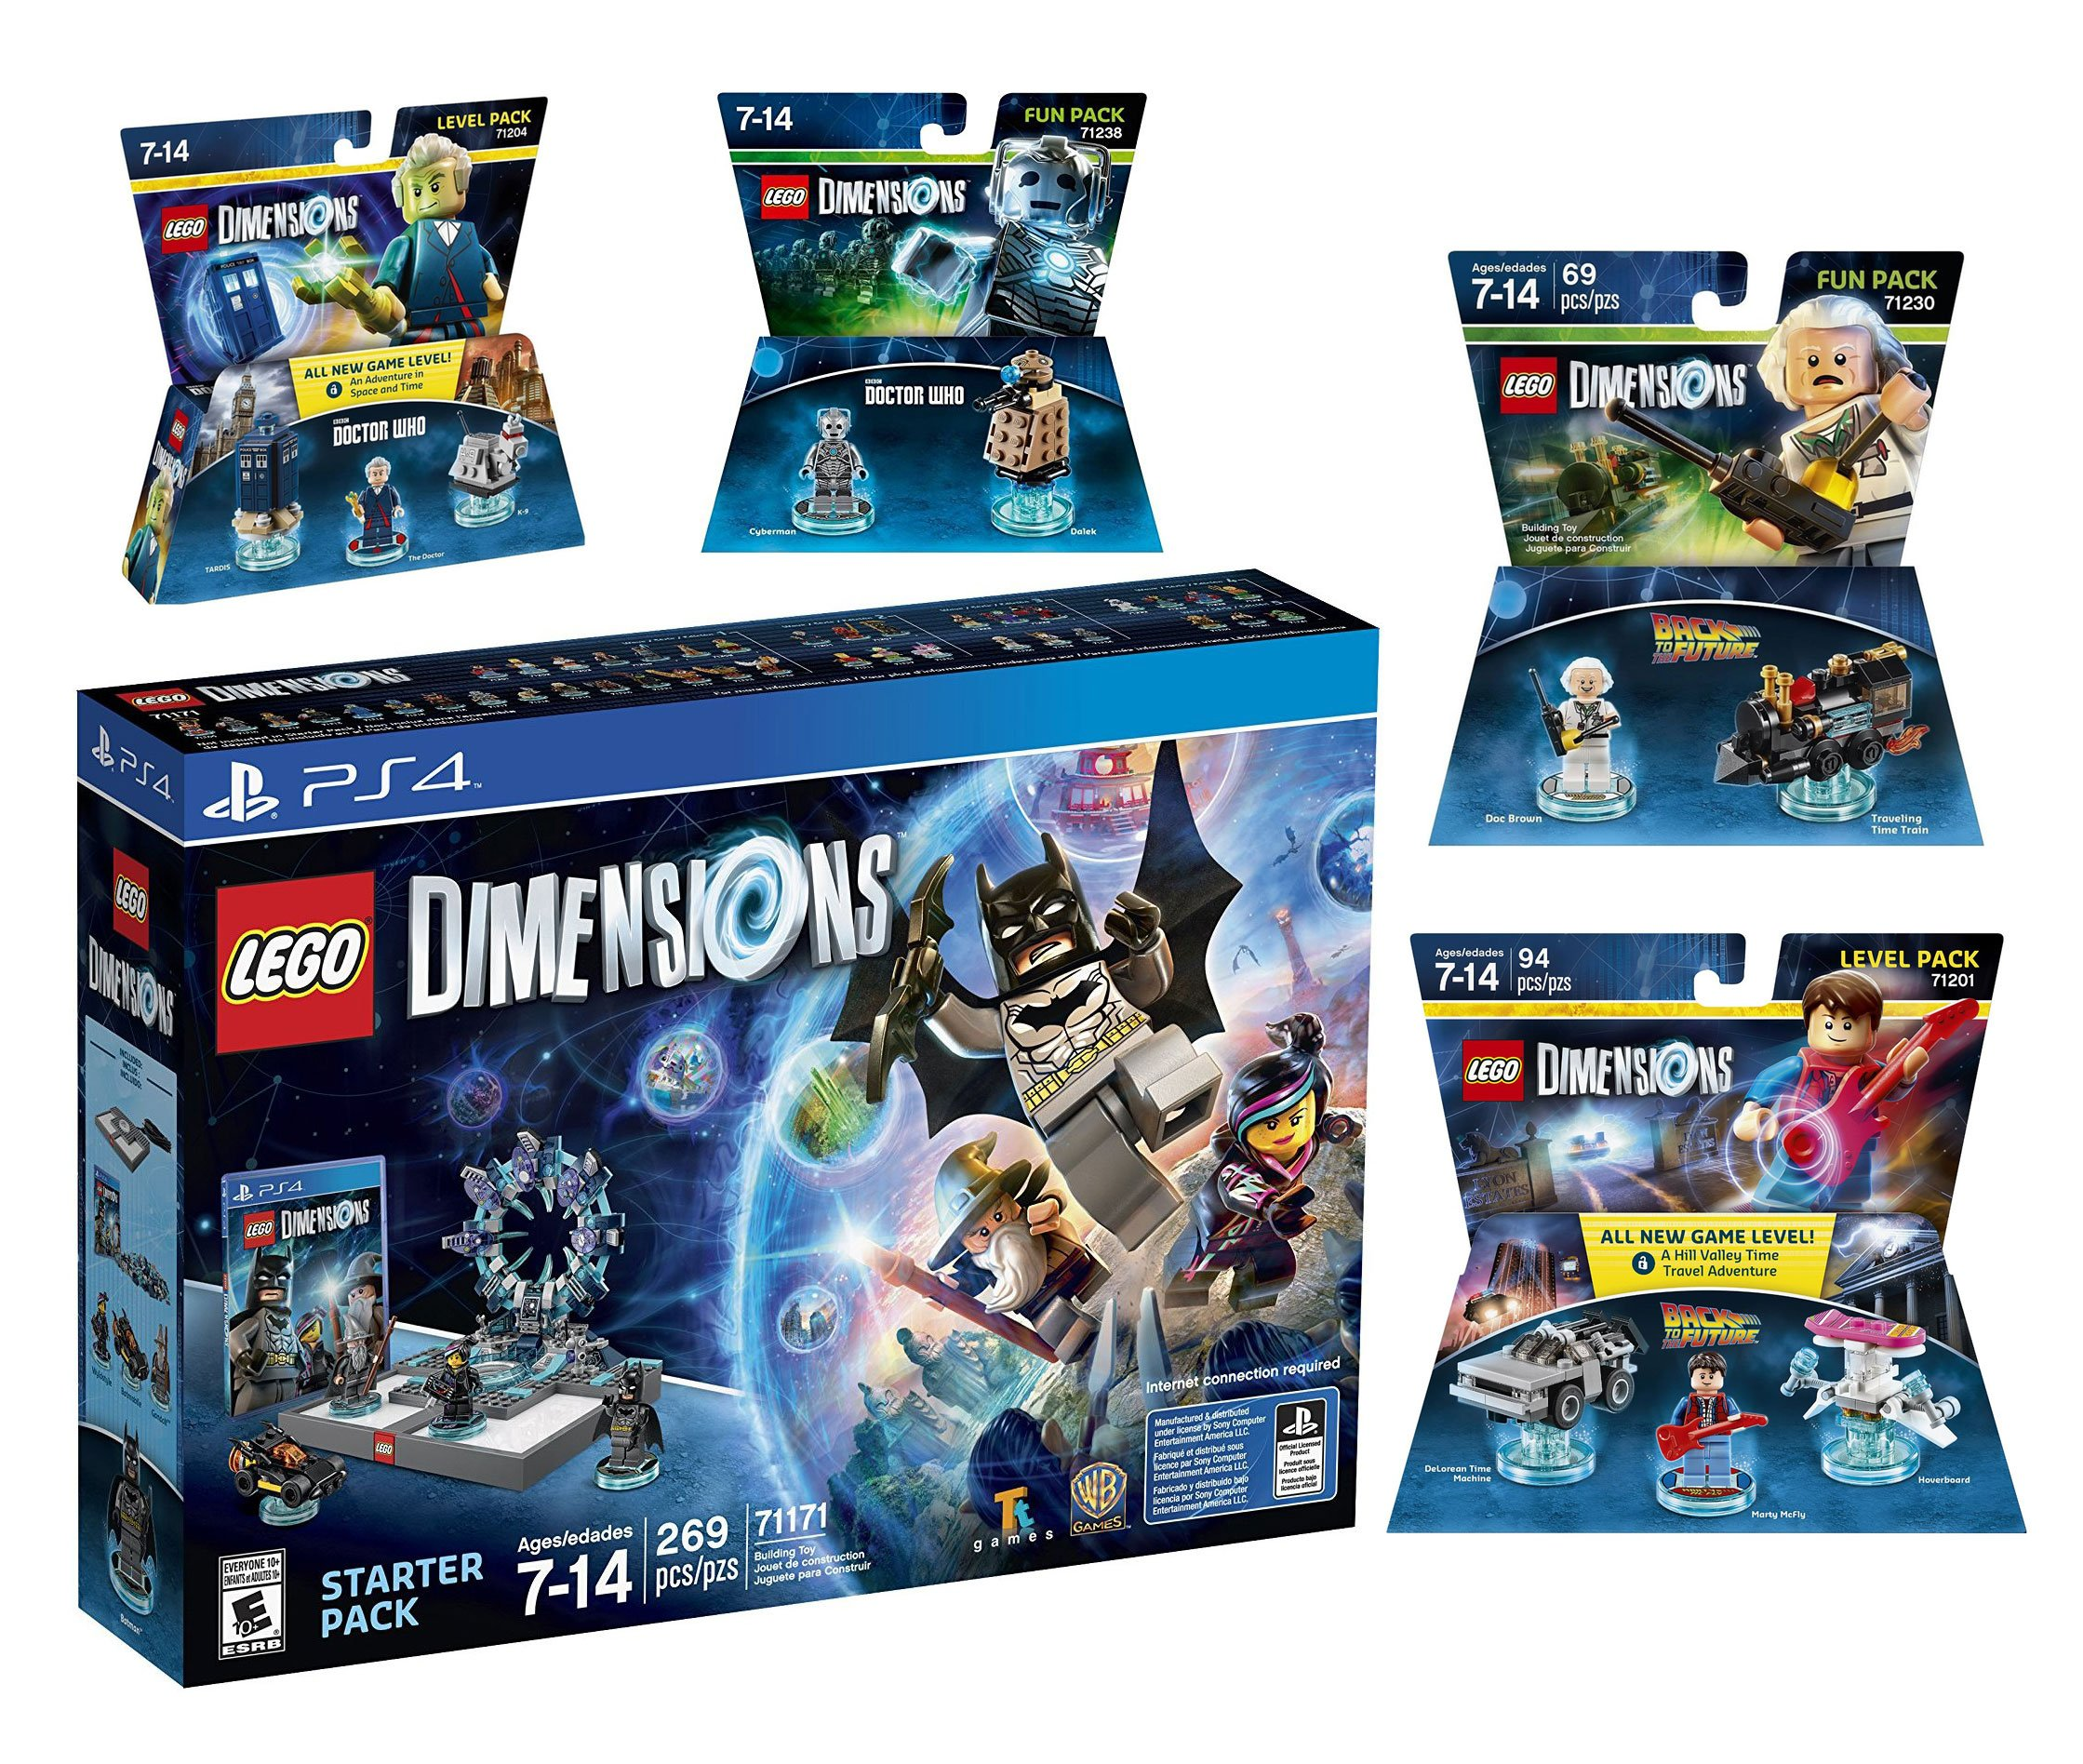 Lego Dimensions Time Traveler Starter Pack + Doctor Who Level Pack + Cyberman Fun Pack + Back To The Future Marty McFly Level Pack + Doc Brown Fun Pack for Playstation 4 or PS4 Pro Console